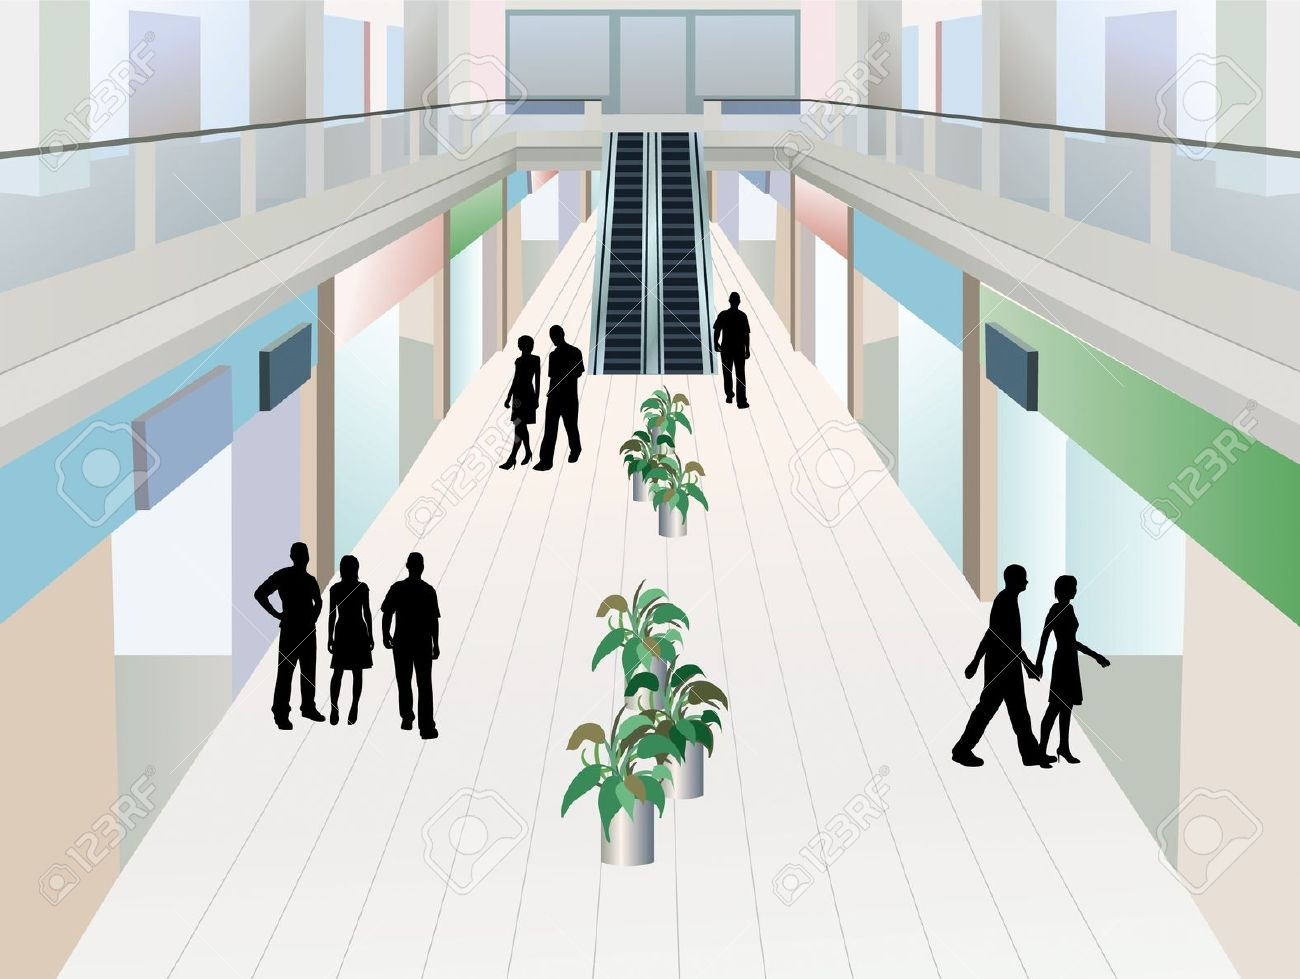 Mall Hallway Clipart 20 Free Cliparts Download Images On